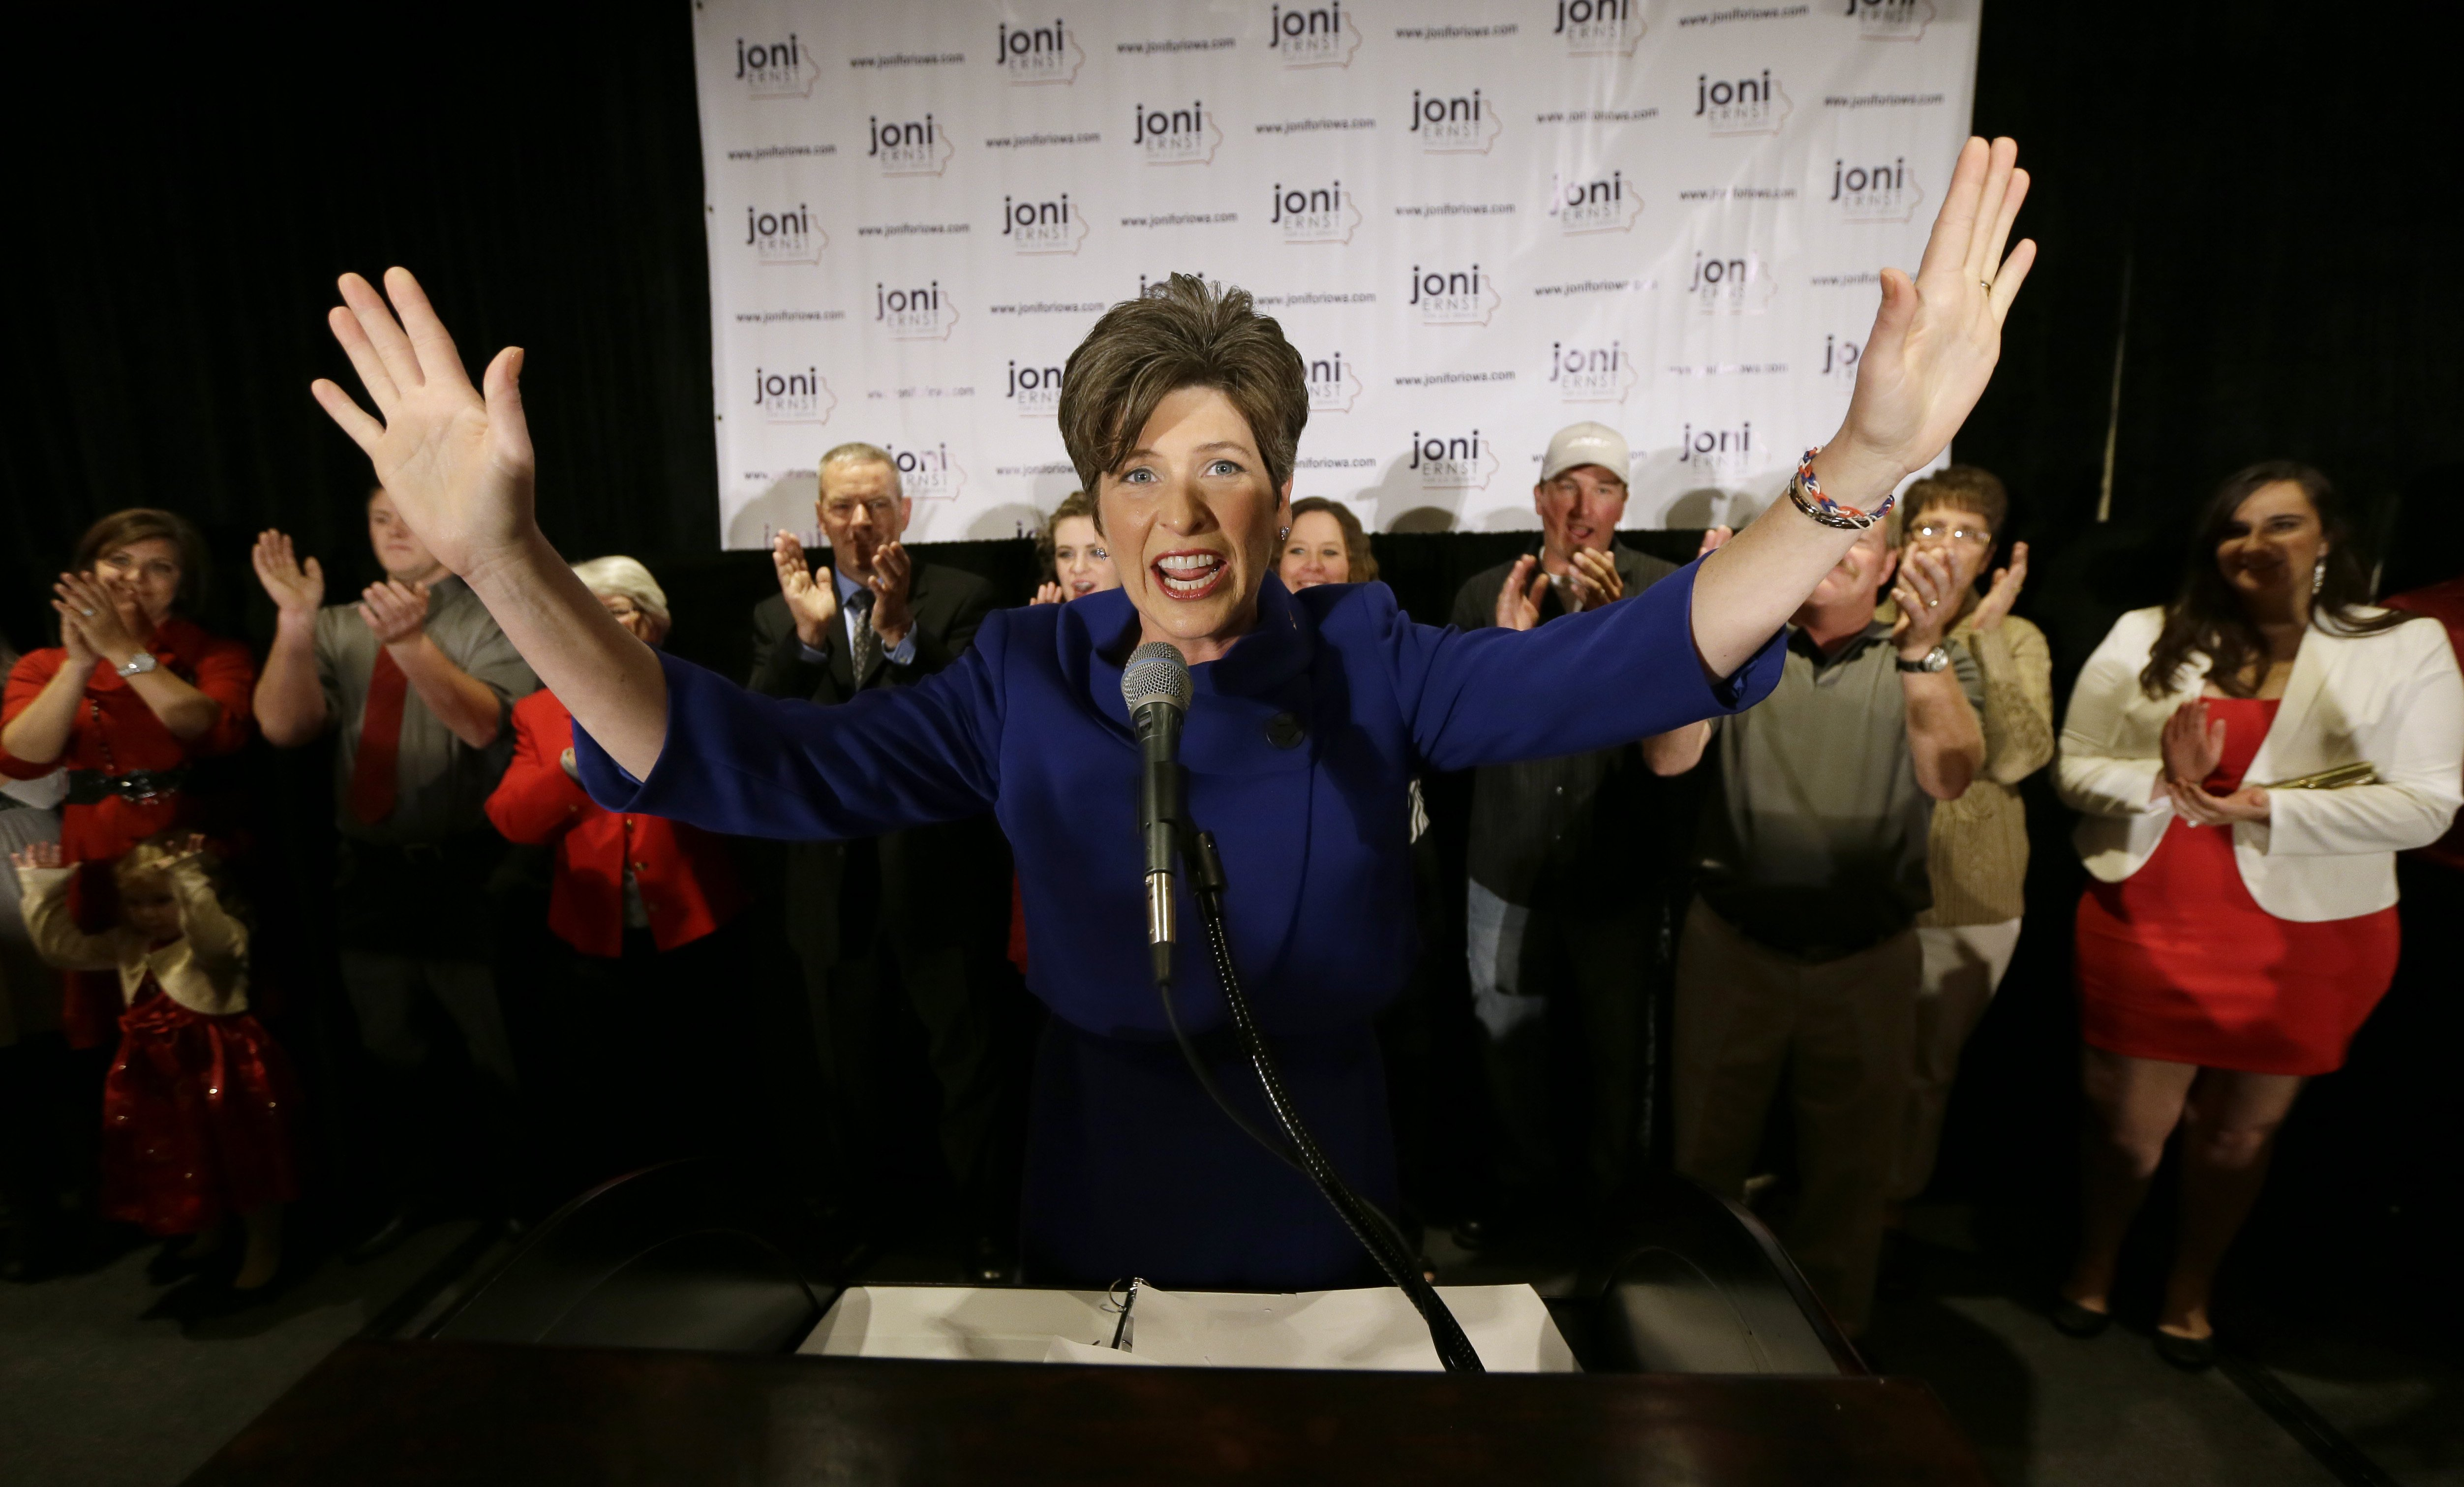 U.S. Sen.-elect Joni Ernst speaks to supporters during an election night rally on Nov. 4, 2014, in West Des Moines, Iowa. Ernst defeated U.S. Rep. Bruce Braley, D-Iowa, in the race to replace retiring U.S. Sen. Tom Harkin.